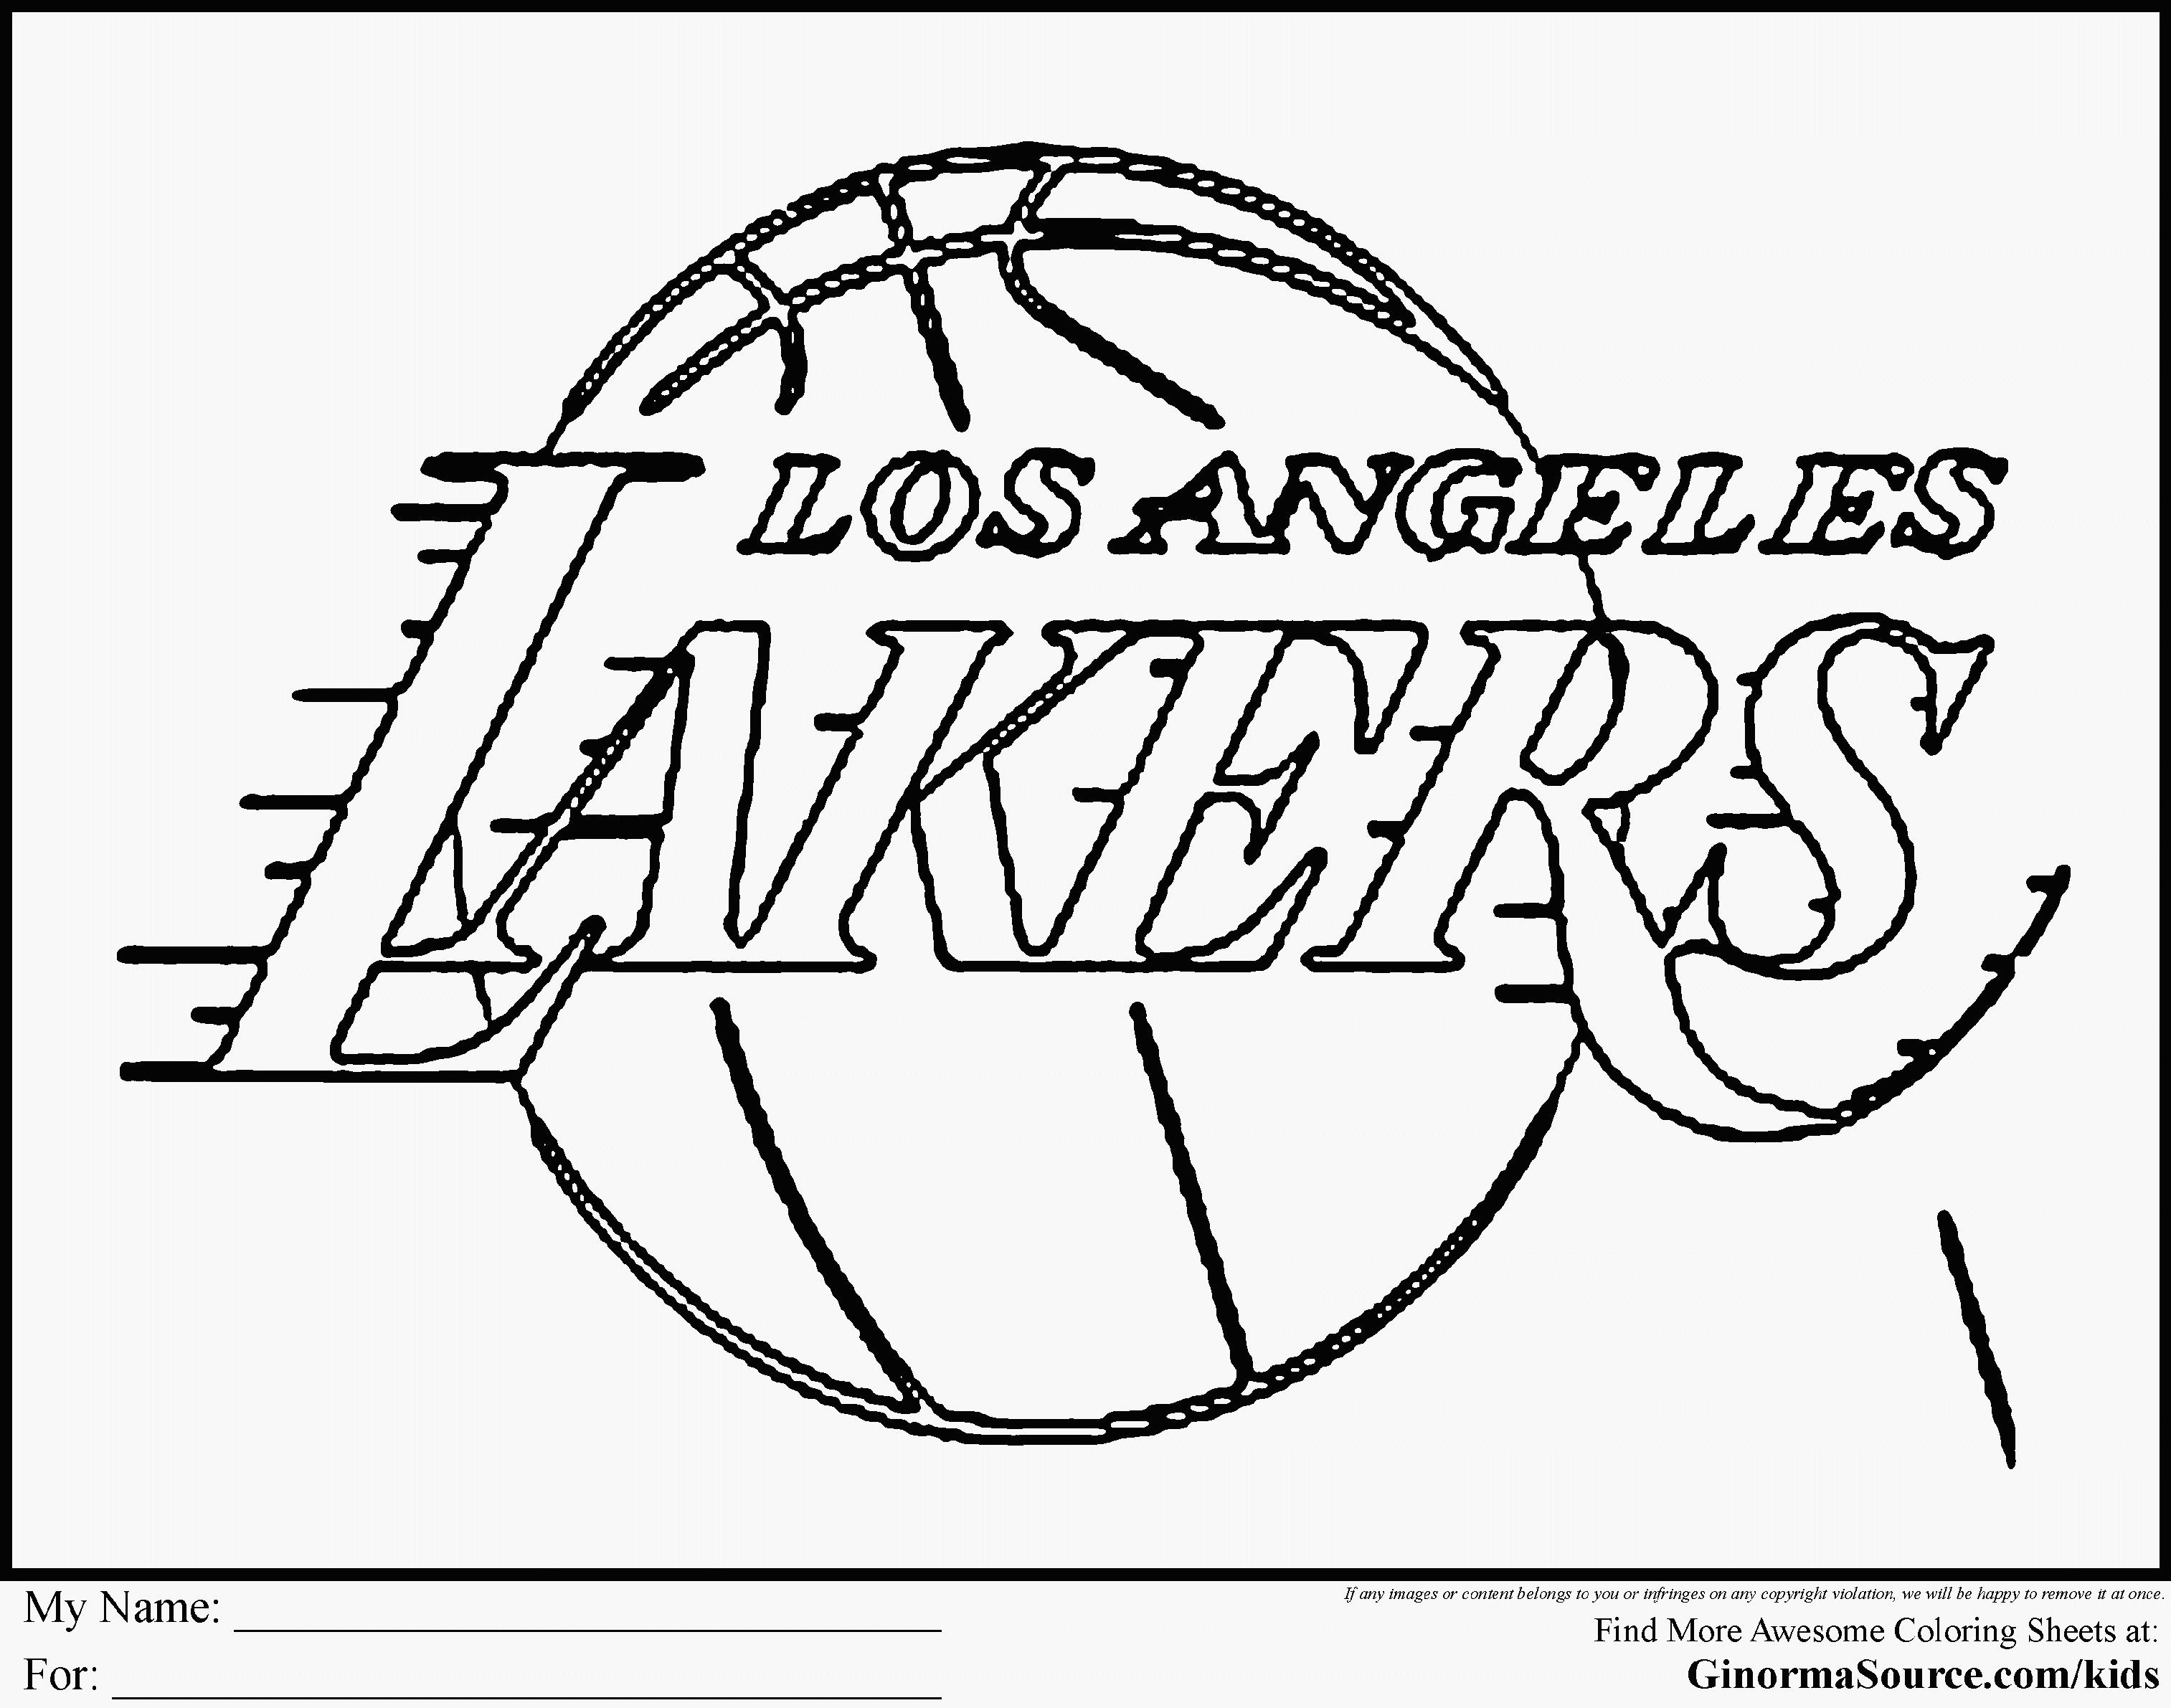 25 Coloring Pages Basketball Player Coloring Pages Coloring Sheets